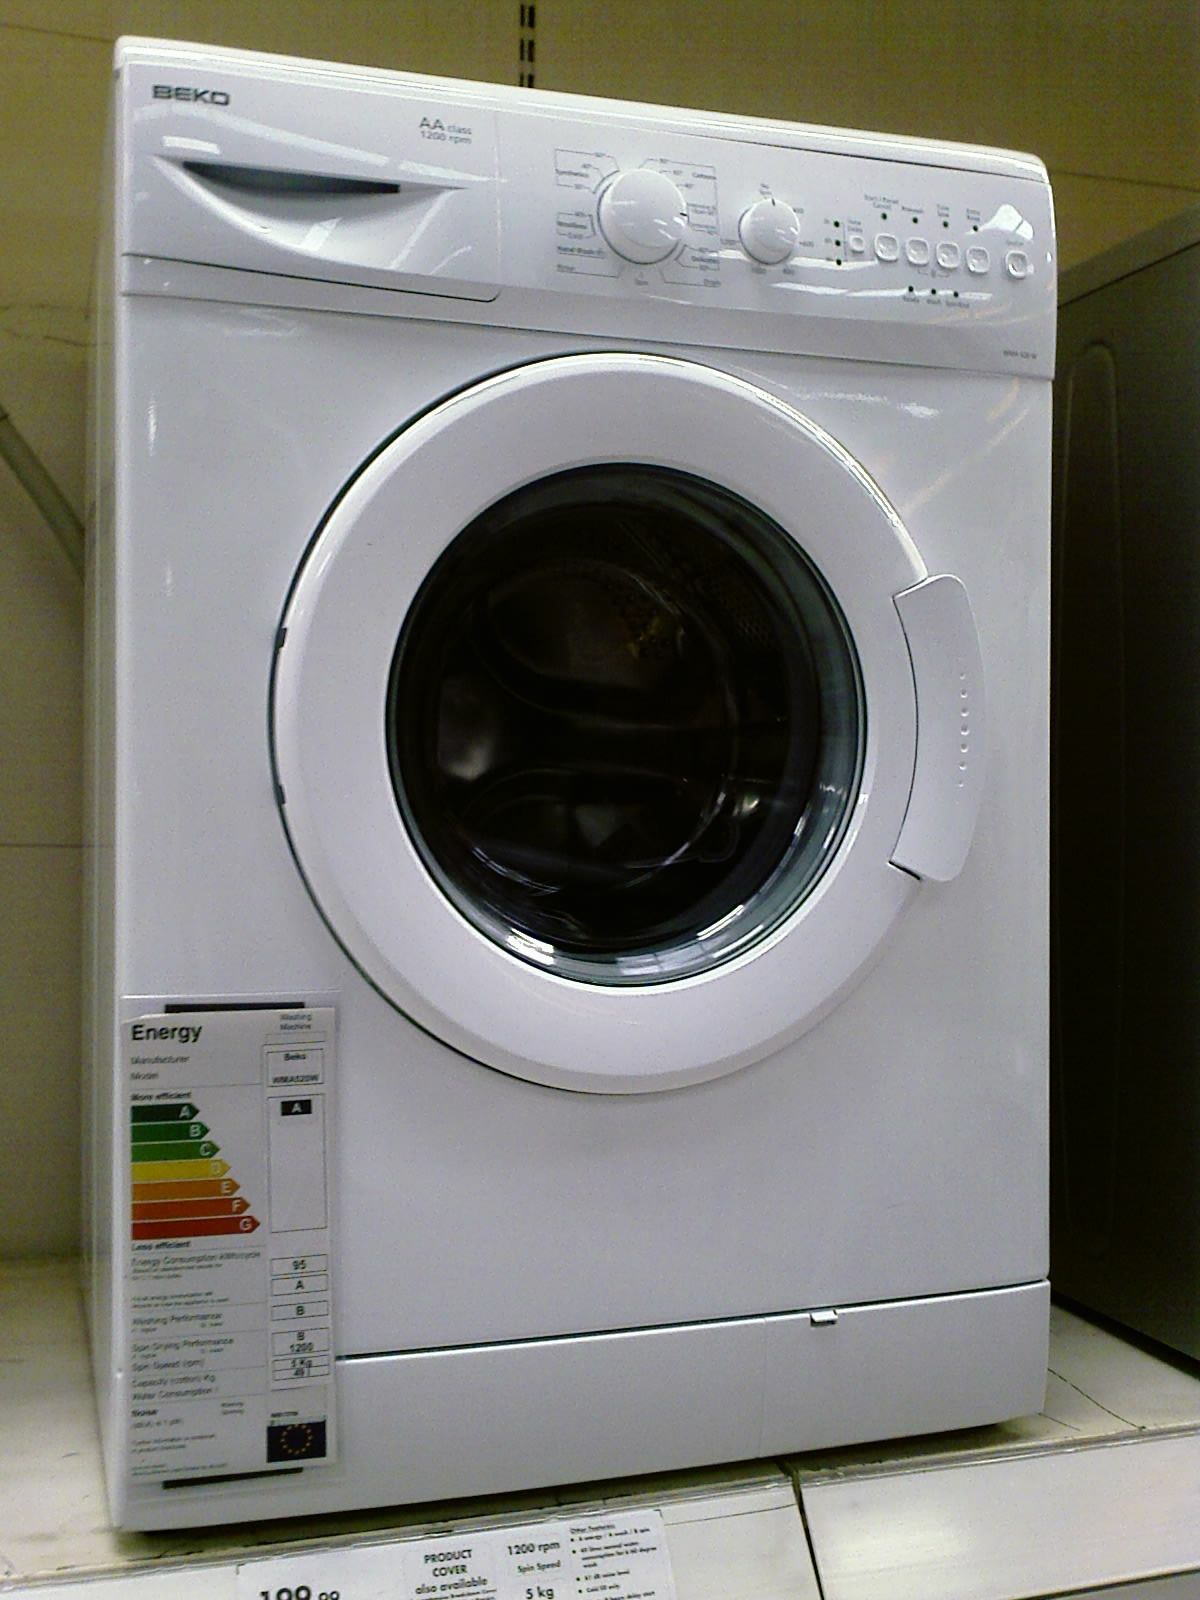 File Washing Machine Beko Jpg Wikimedia Commons